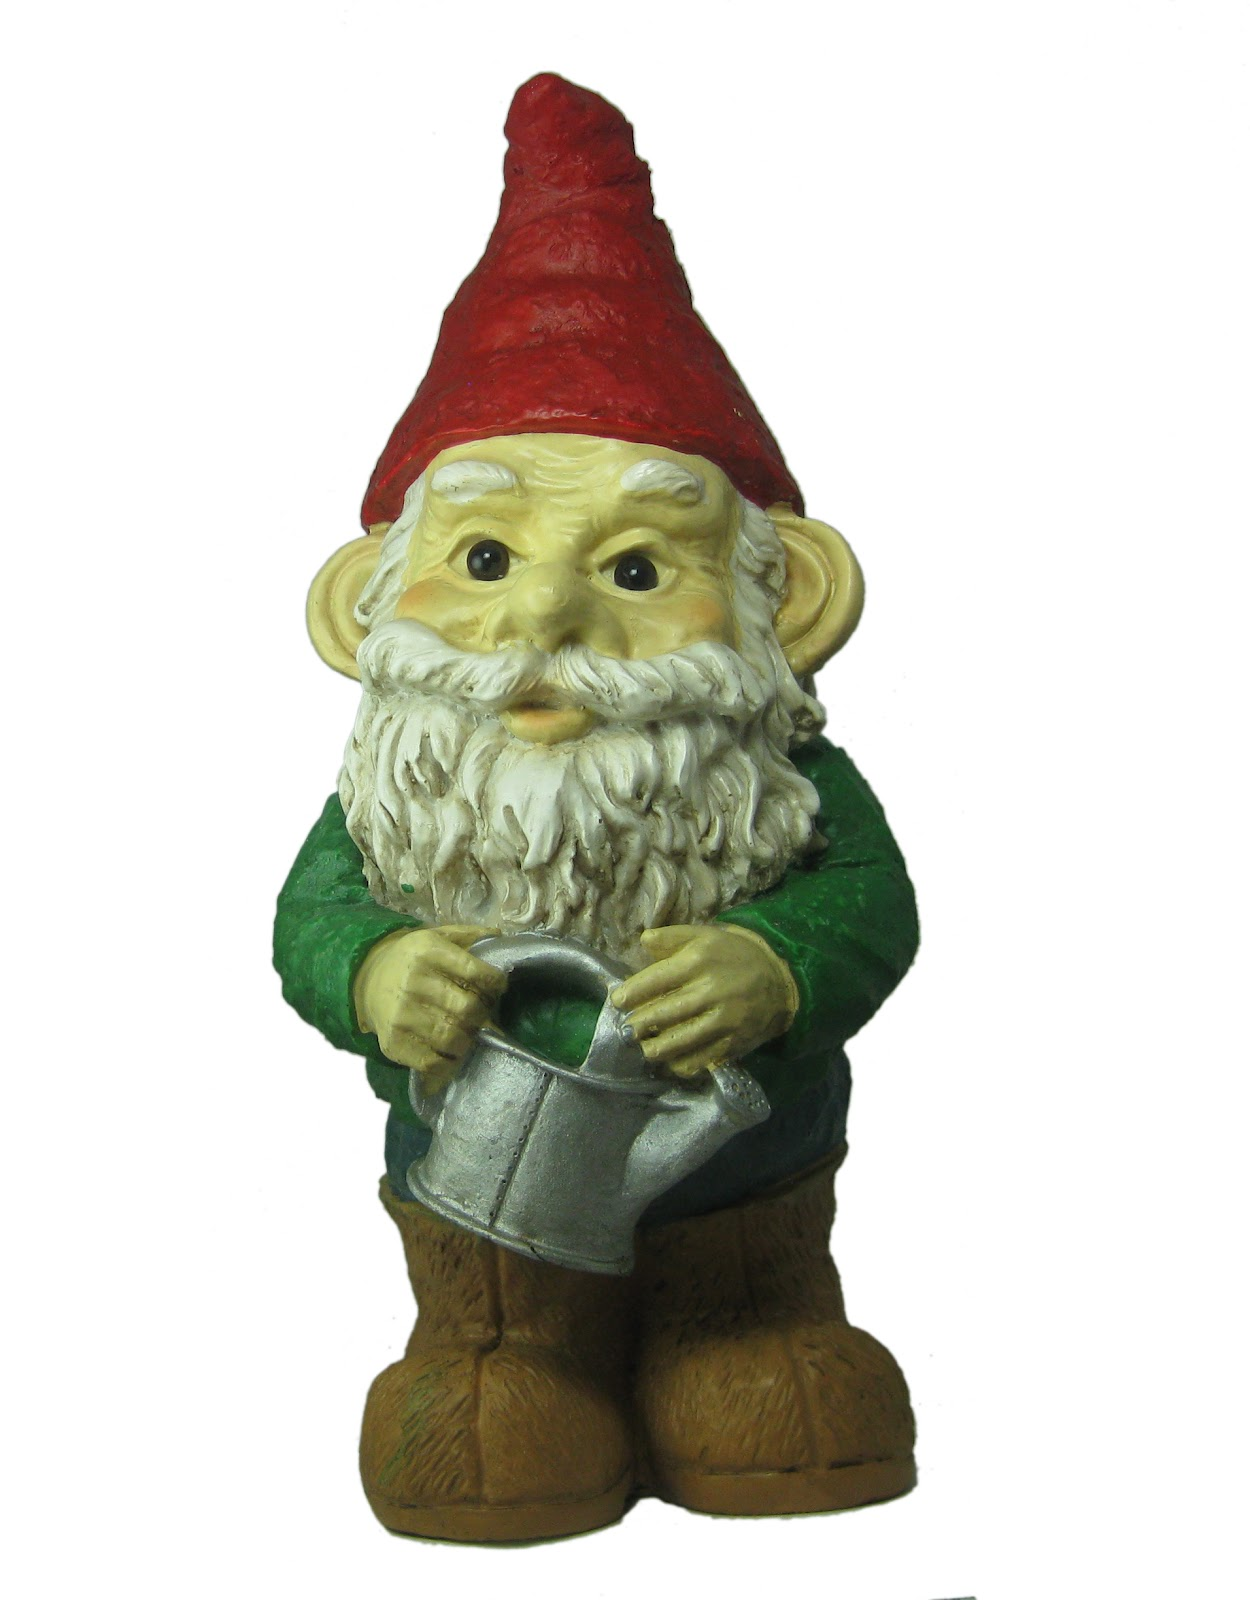 Gnome In Garden: Party Of 3: I Am A Marketing GENIUS